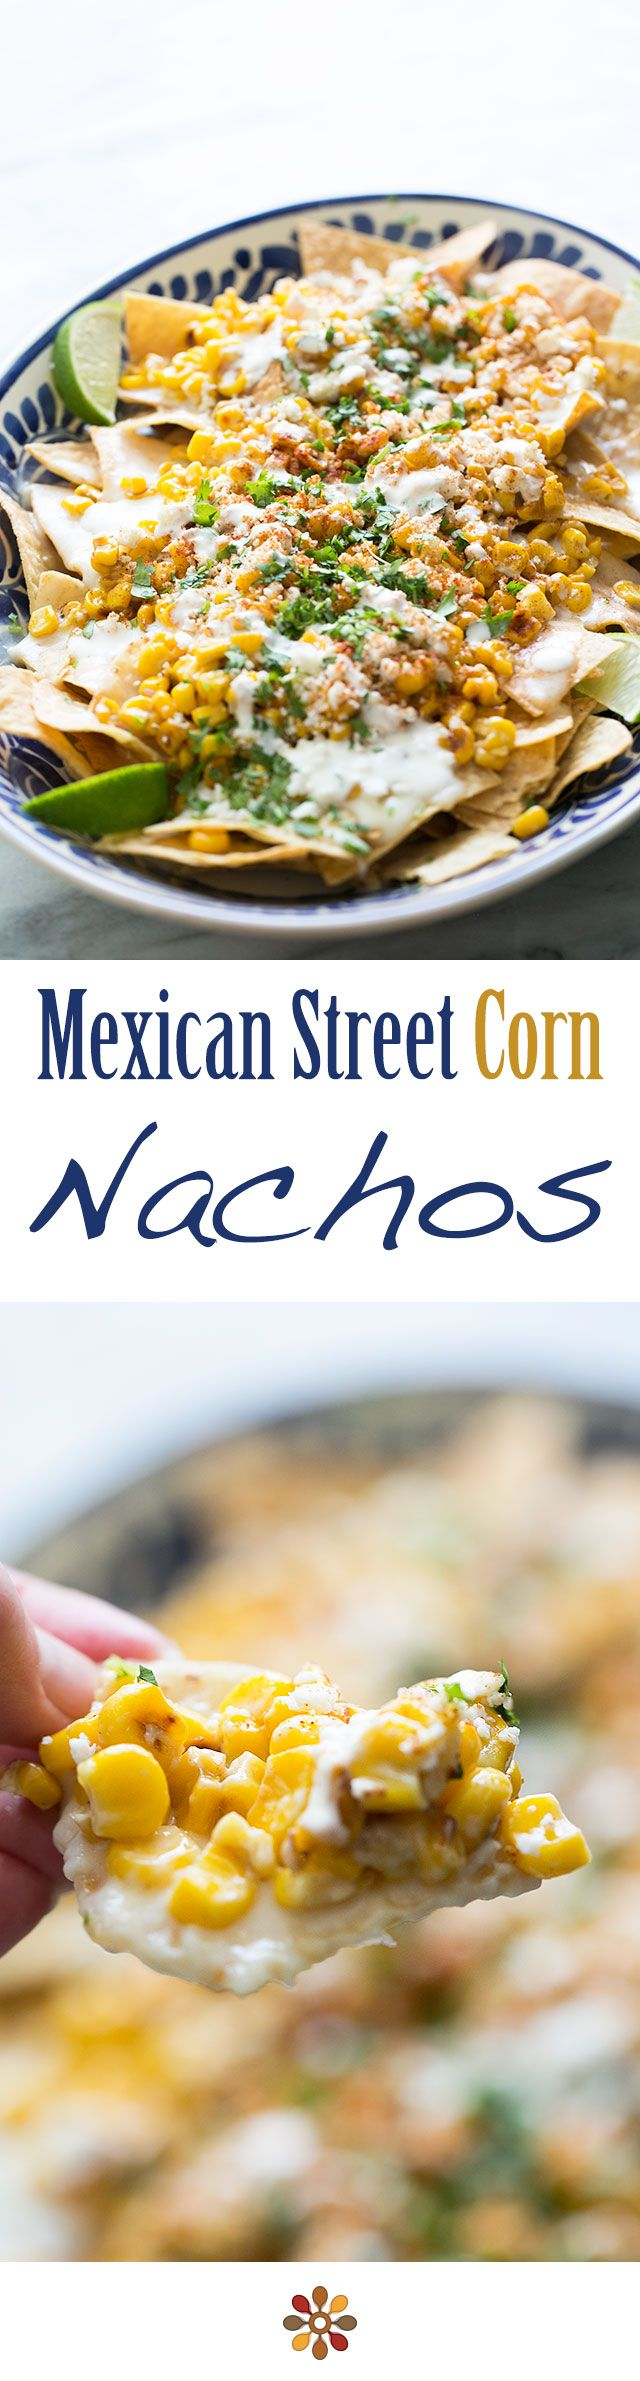 Street Corn Nachos - Tortilla chips topped a creamy monterey jack cheese sauce, toasted corn, crumbled cotija, chili powder and cilantro. Perfect for a game day gathering or fiesta!